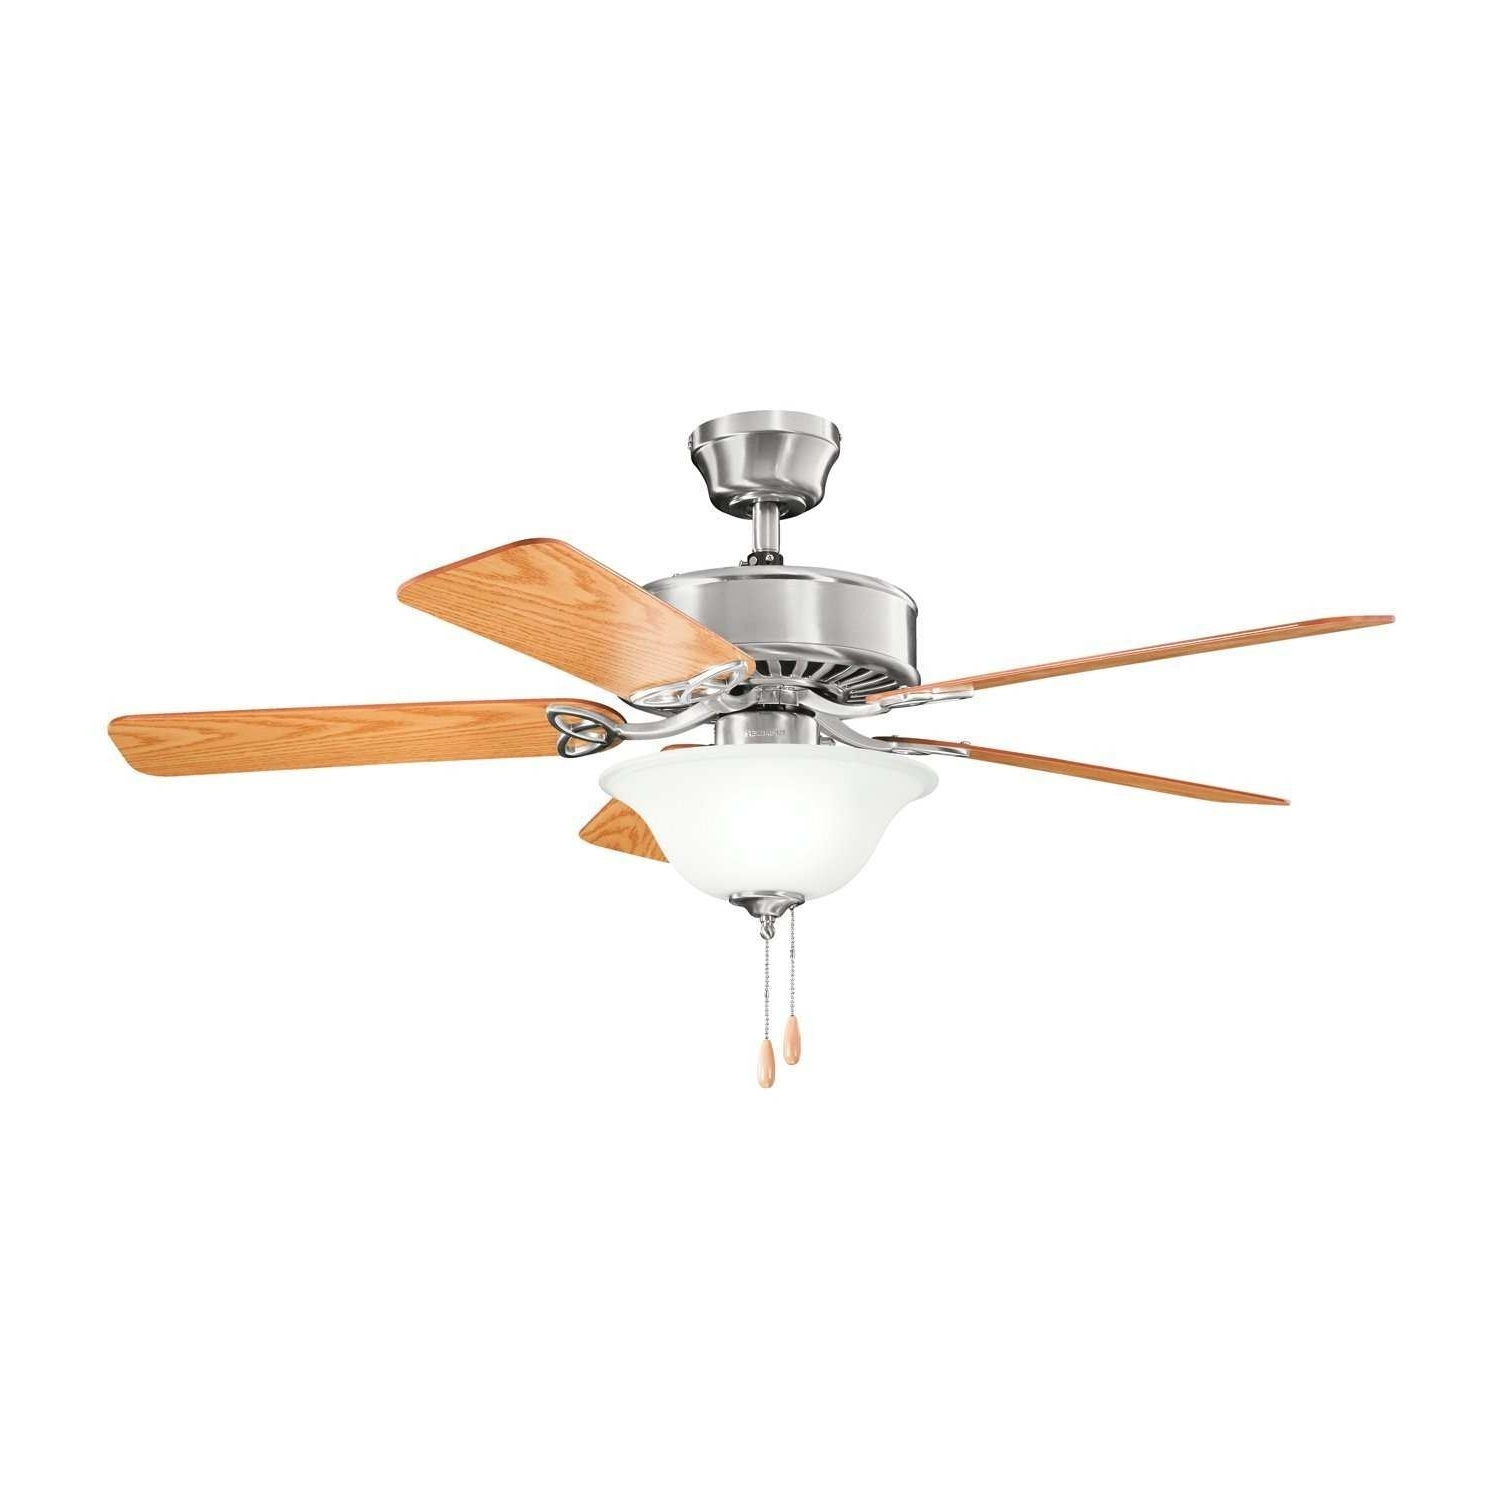 Latest Outdoor Ceiling Fans With Metal Blades Elegant Kichler Mwh 50 Pertaining To Outdoor Ceiling Fans At Amazon (View 10 of 20)